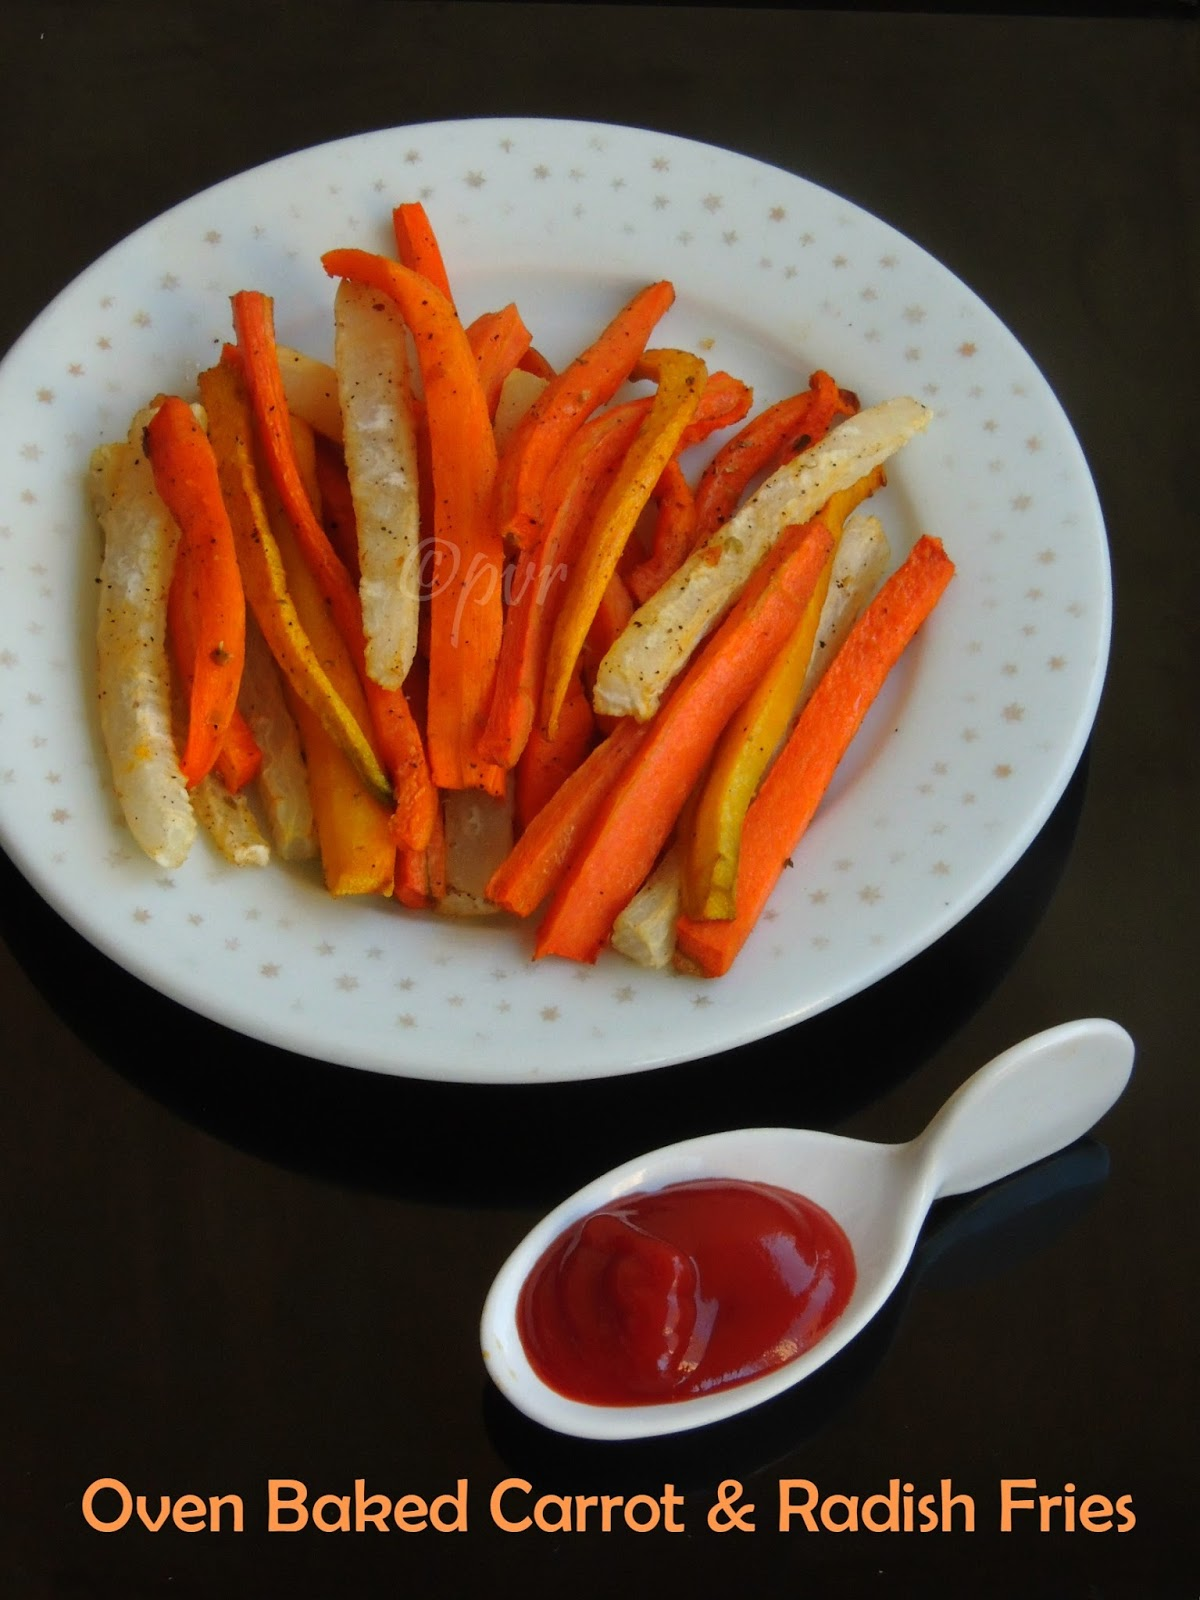 Priya's Versatile Recipes: Oven Baked Carrot and Radish Fries